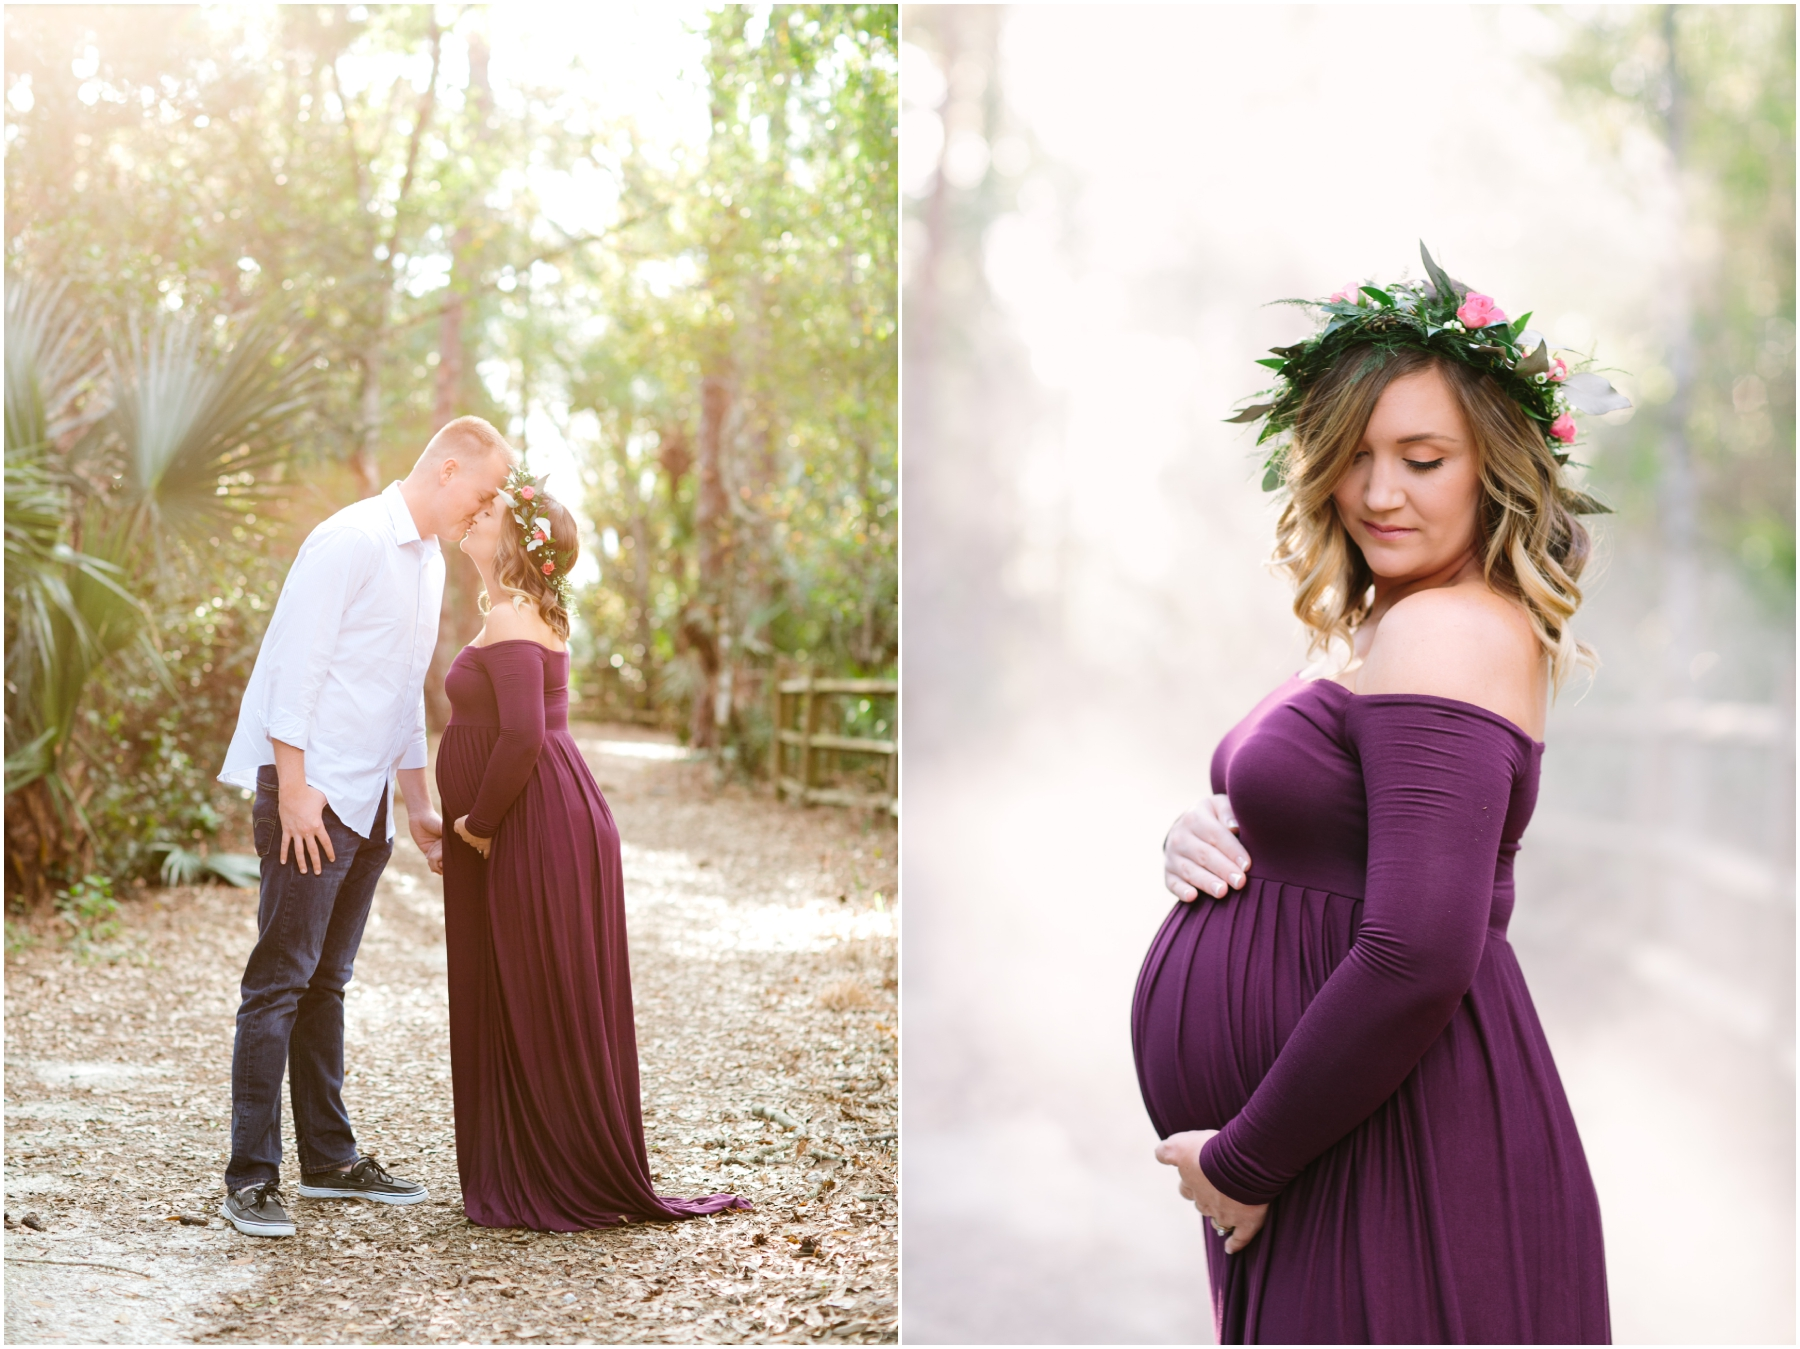 Rustic Flower Crown Maternity Session in Jupiter Florida 1462bf0a2ae